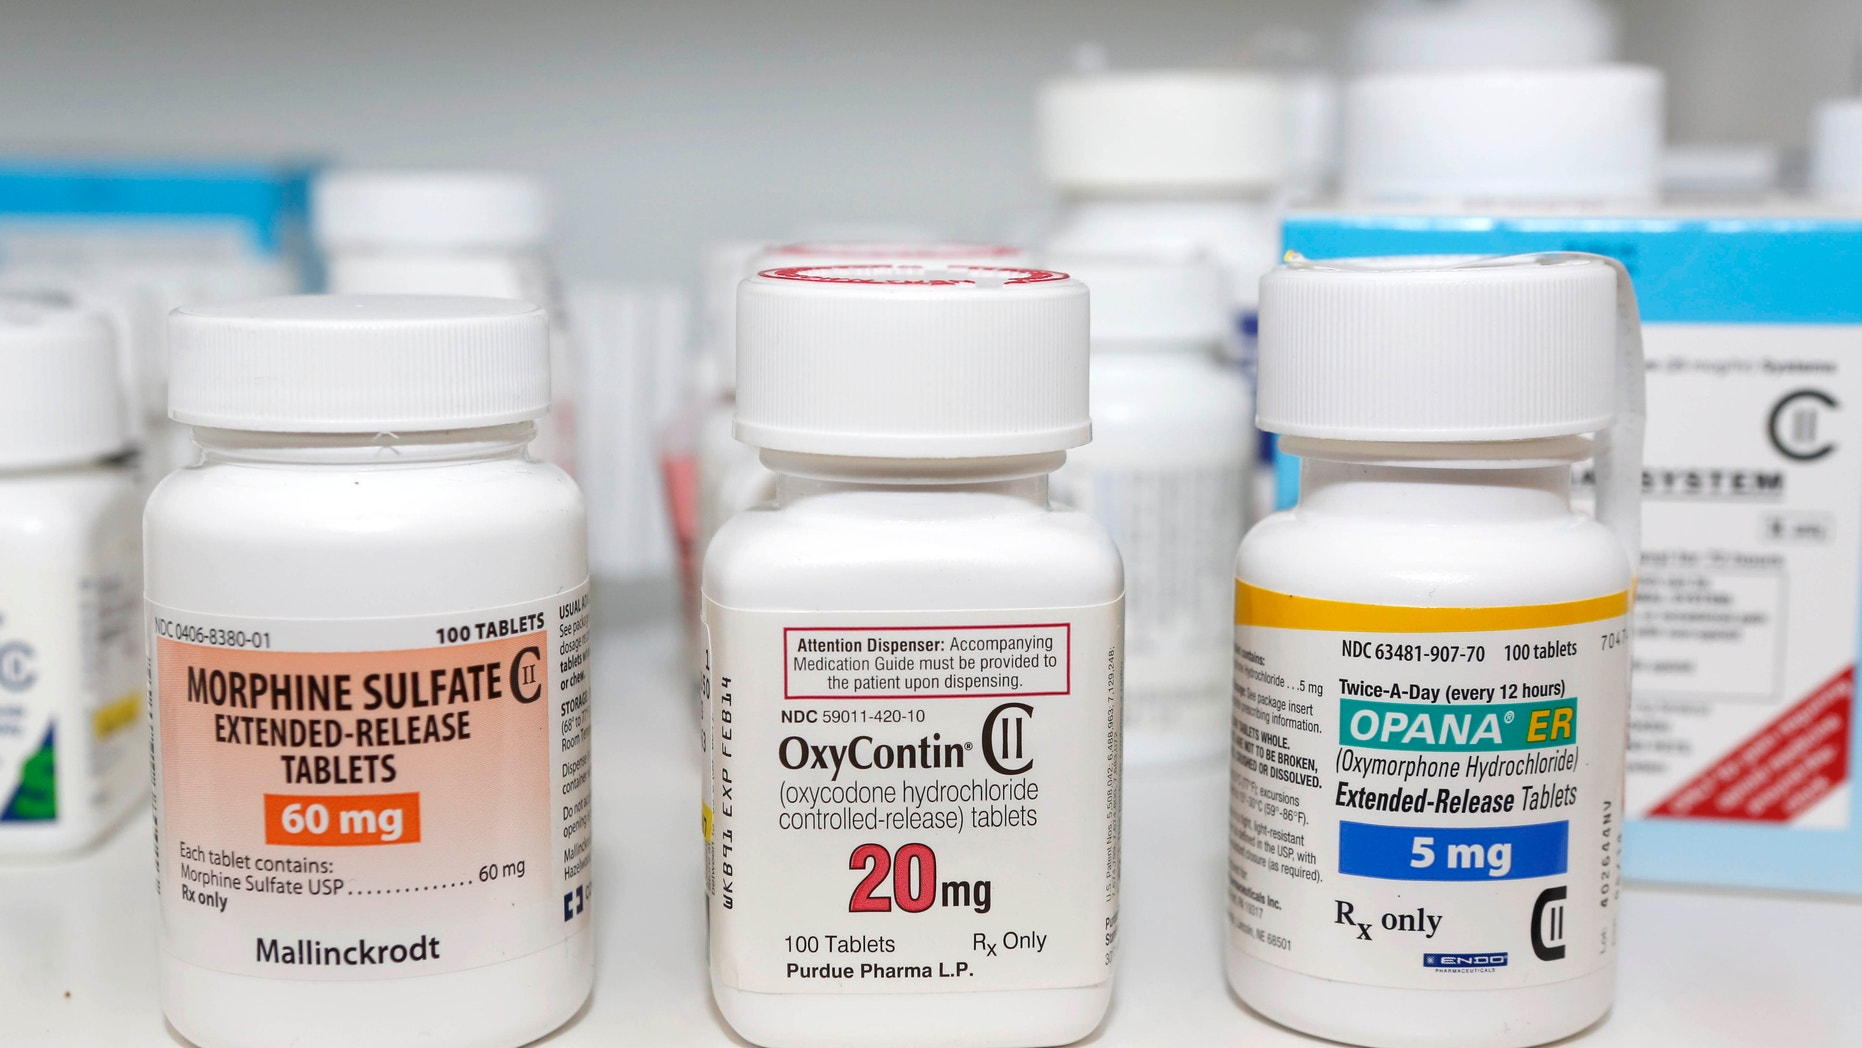 A trial launched by the Colorado Hospital Association, or CHA, had the goal of reducing opioid prescriptions in emergency rooms by 15 percent. Instead, opioid prescriptions were cut by 36 percent.  Ten hospitals across the state participated in the groundbreaking pilot program.